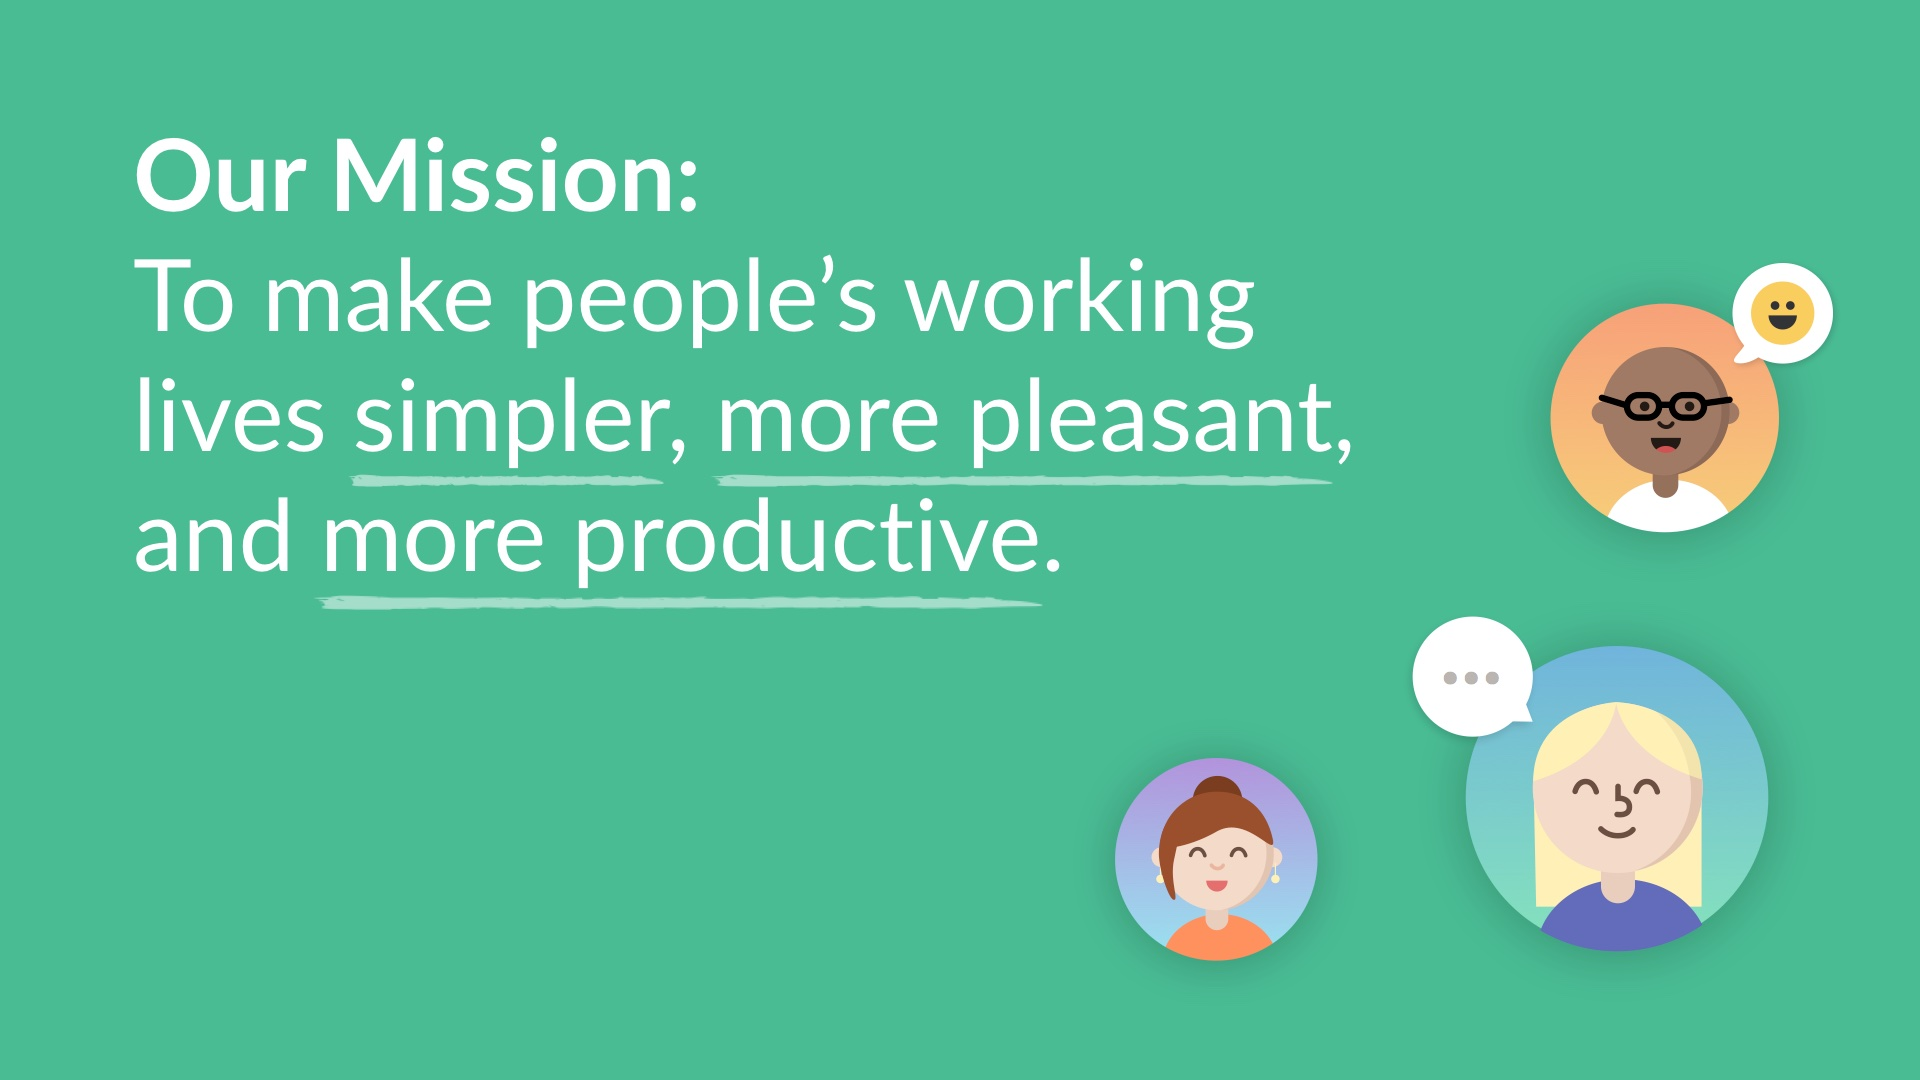 Slack's mission statement